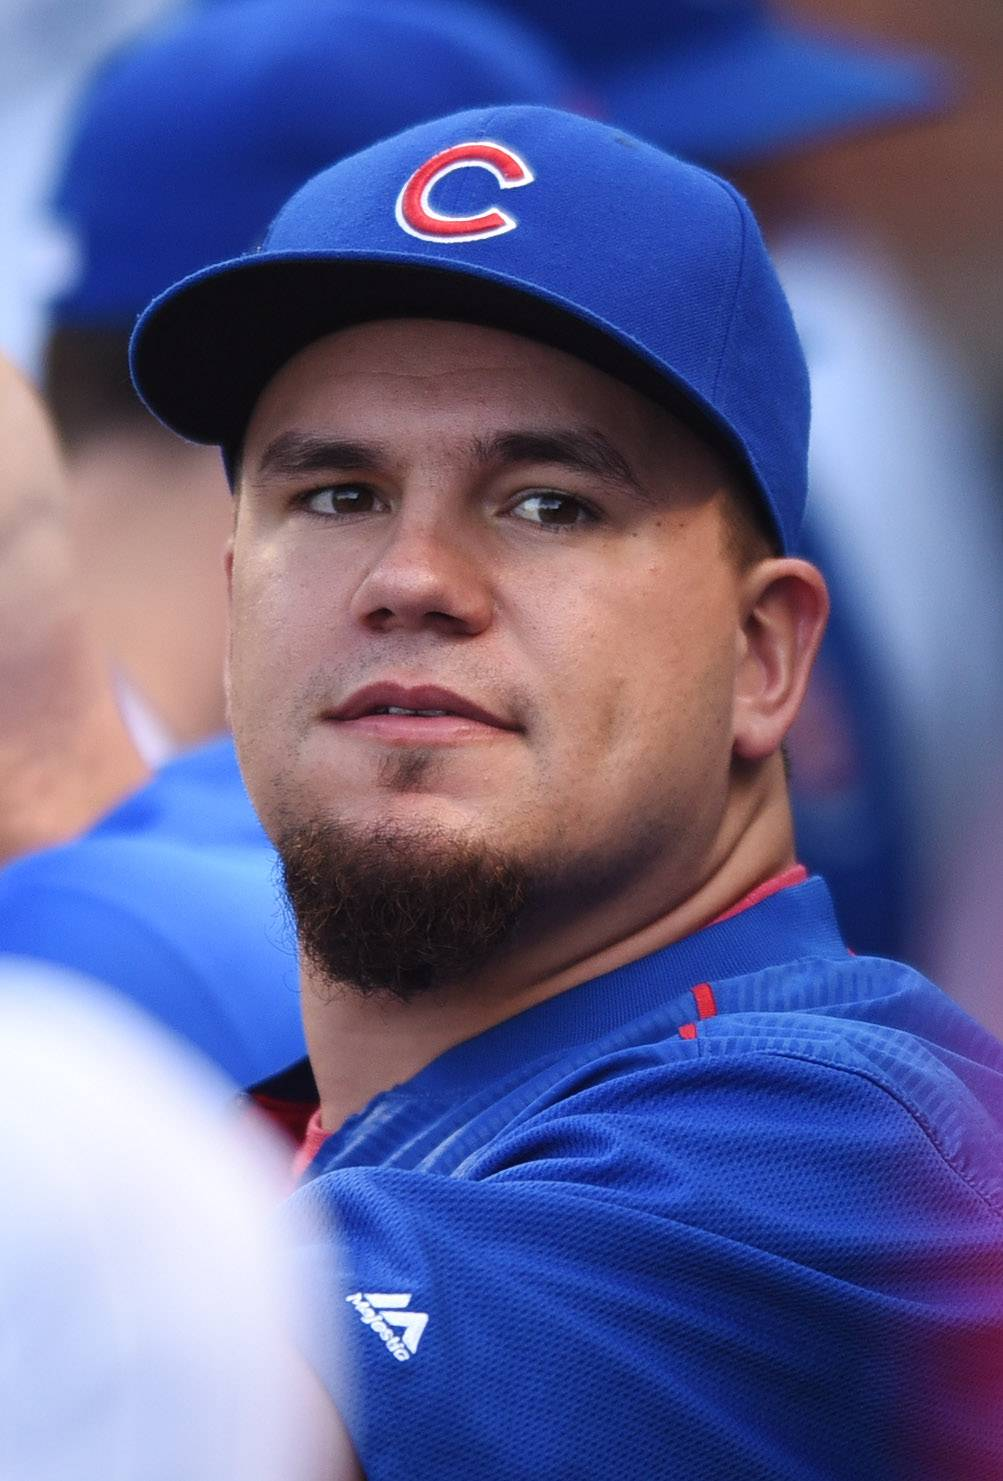 Although he spent much of last season rehabbing from knee surgery, Kyle Schwarber also spent a lot of time in the dugout with his Cubs teammates as he charted pitches and cheered them on.